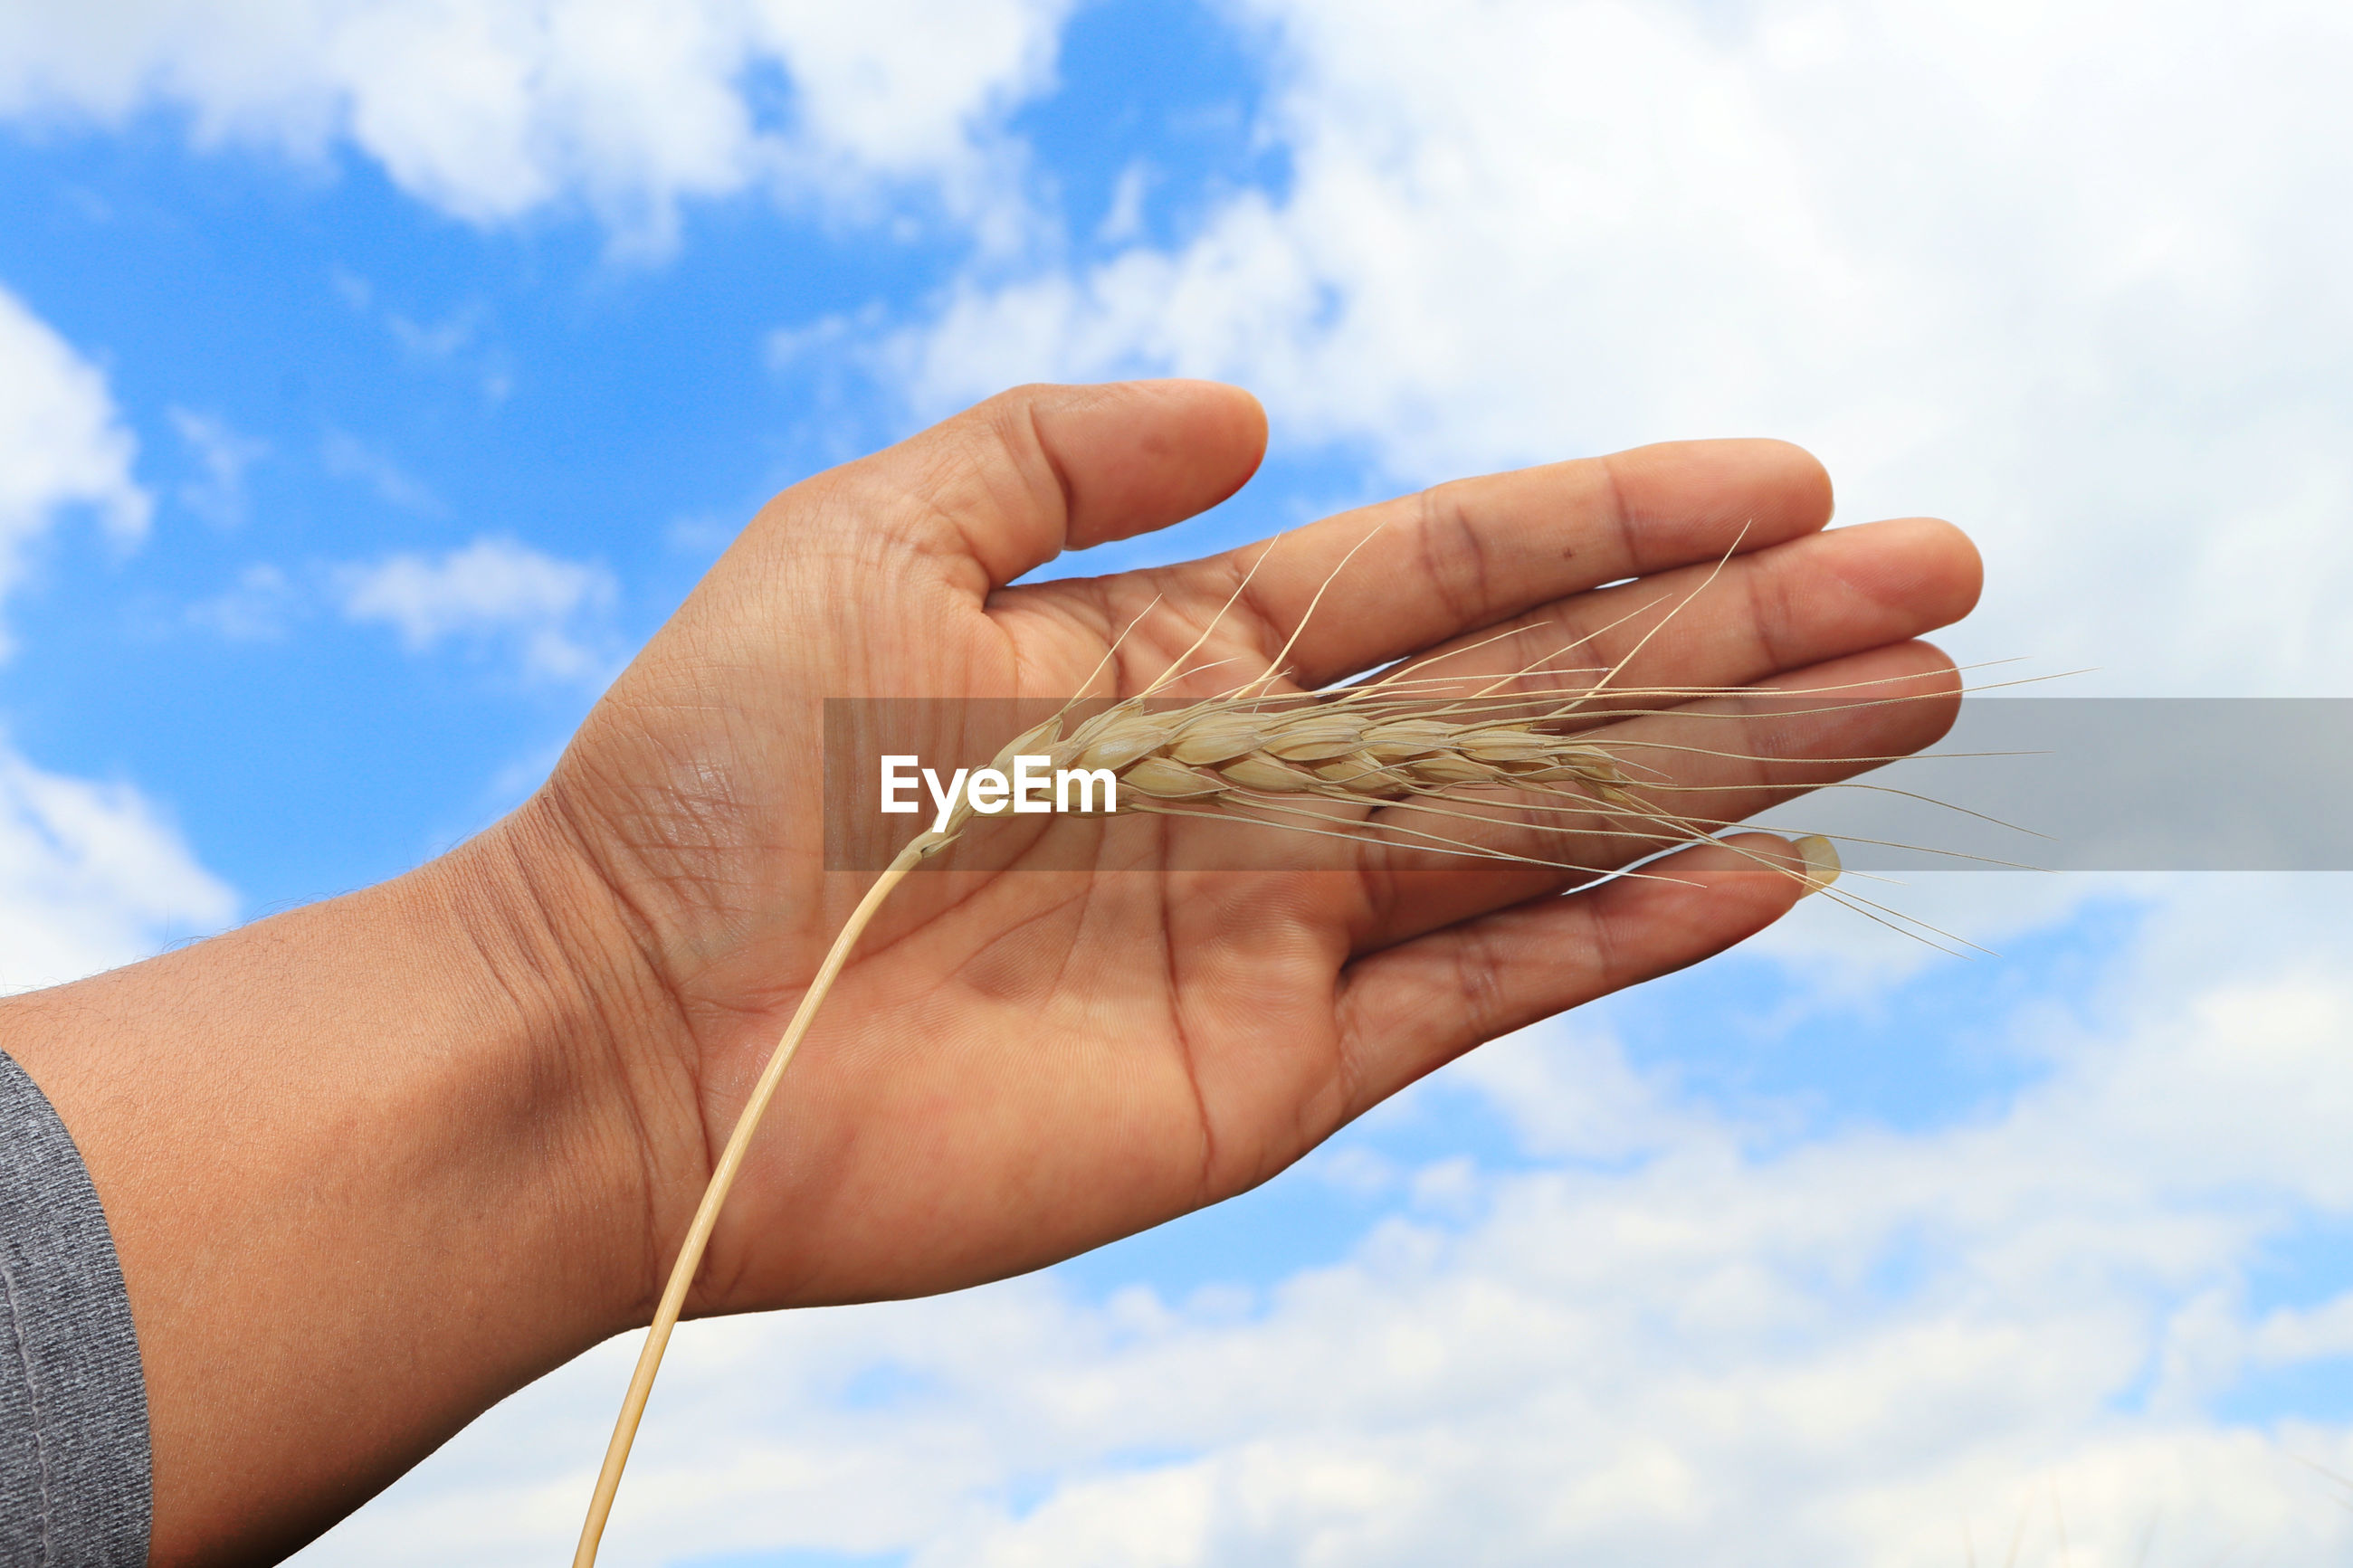 Low angle view of hand holding ear of wheat against sky